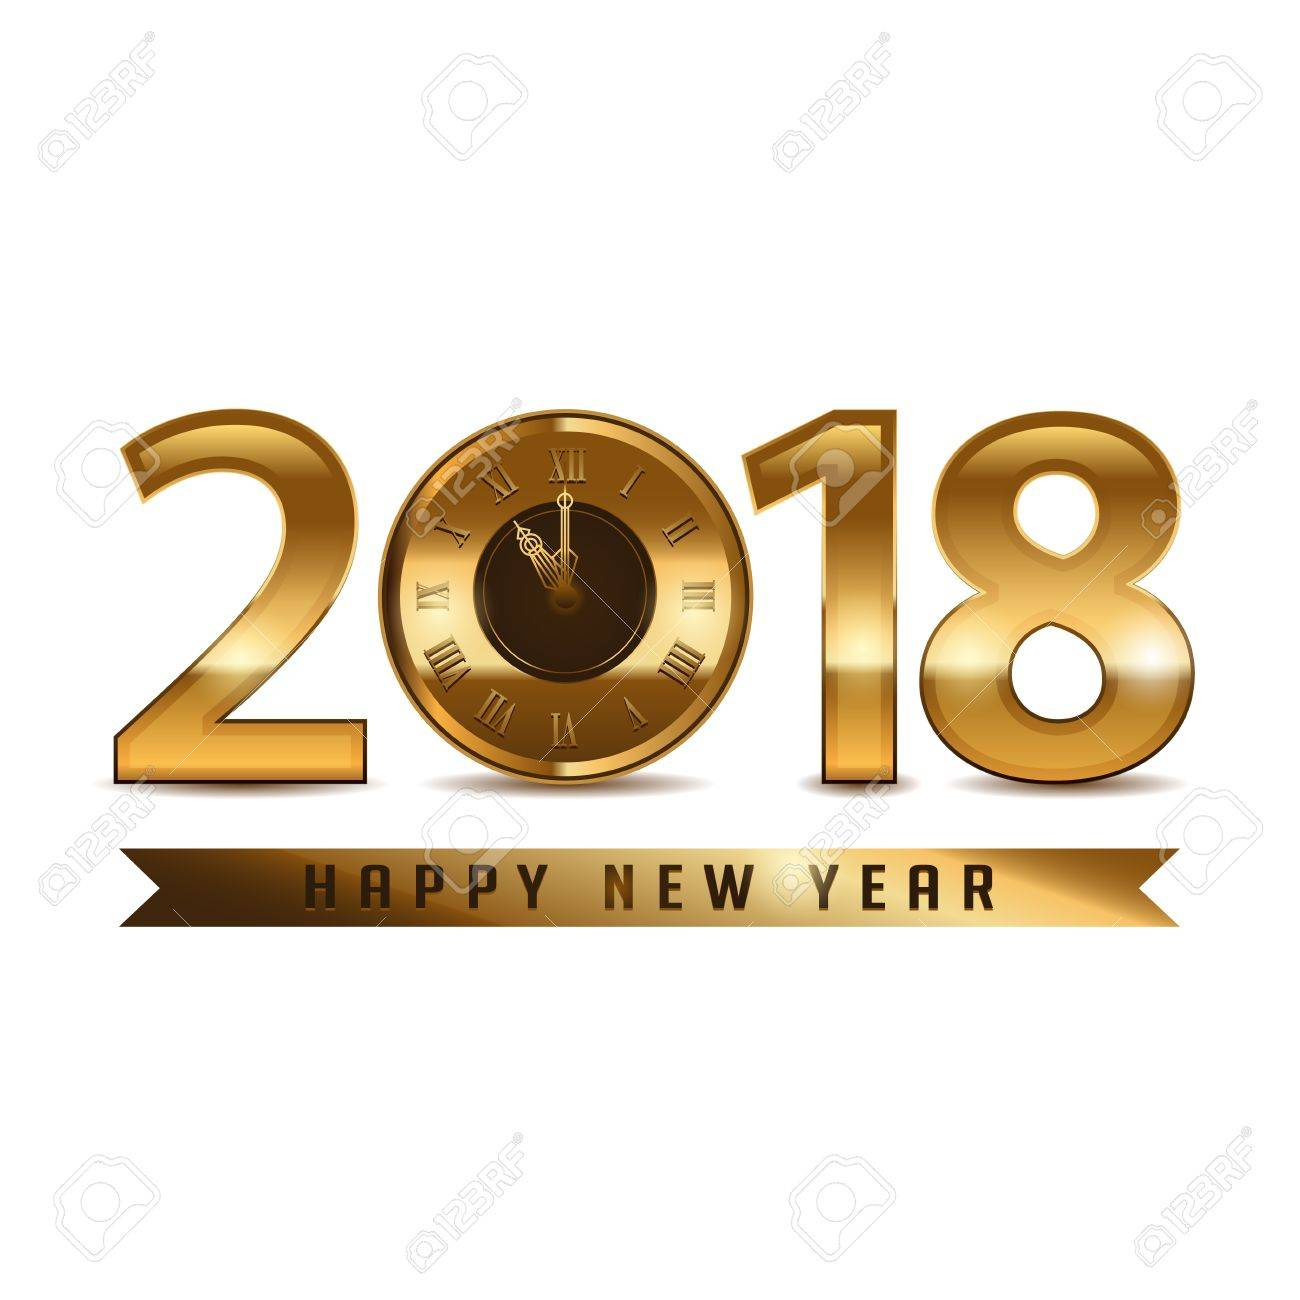 2018 New Year Gold Letters With Clock On White Background Royalty ...